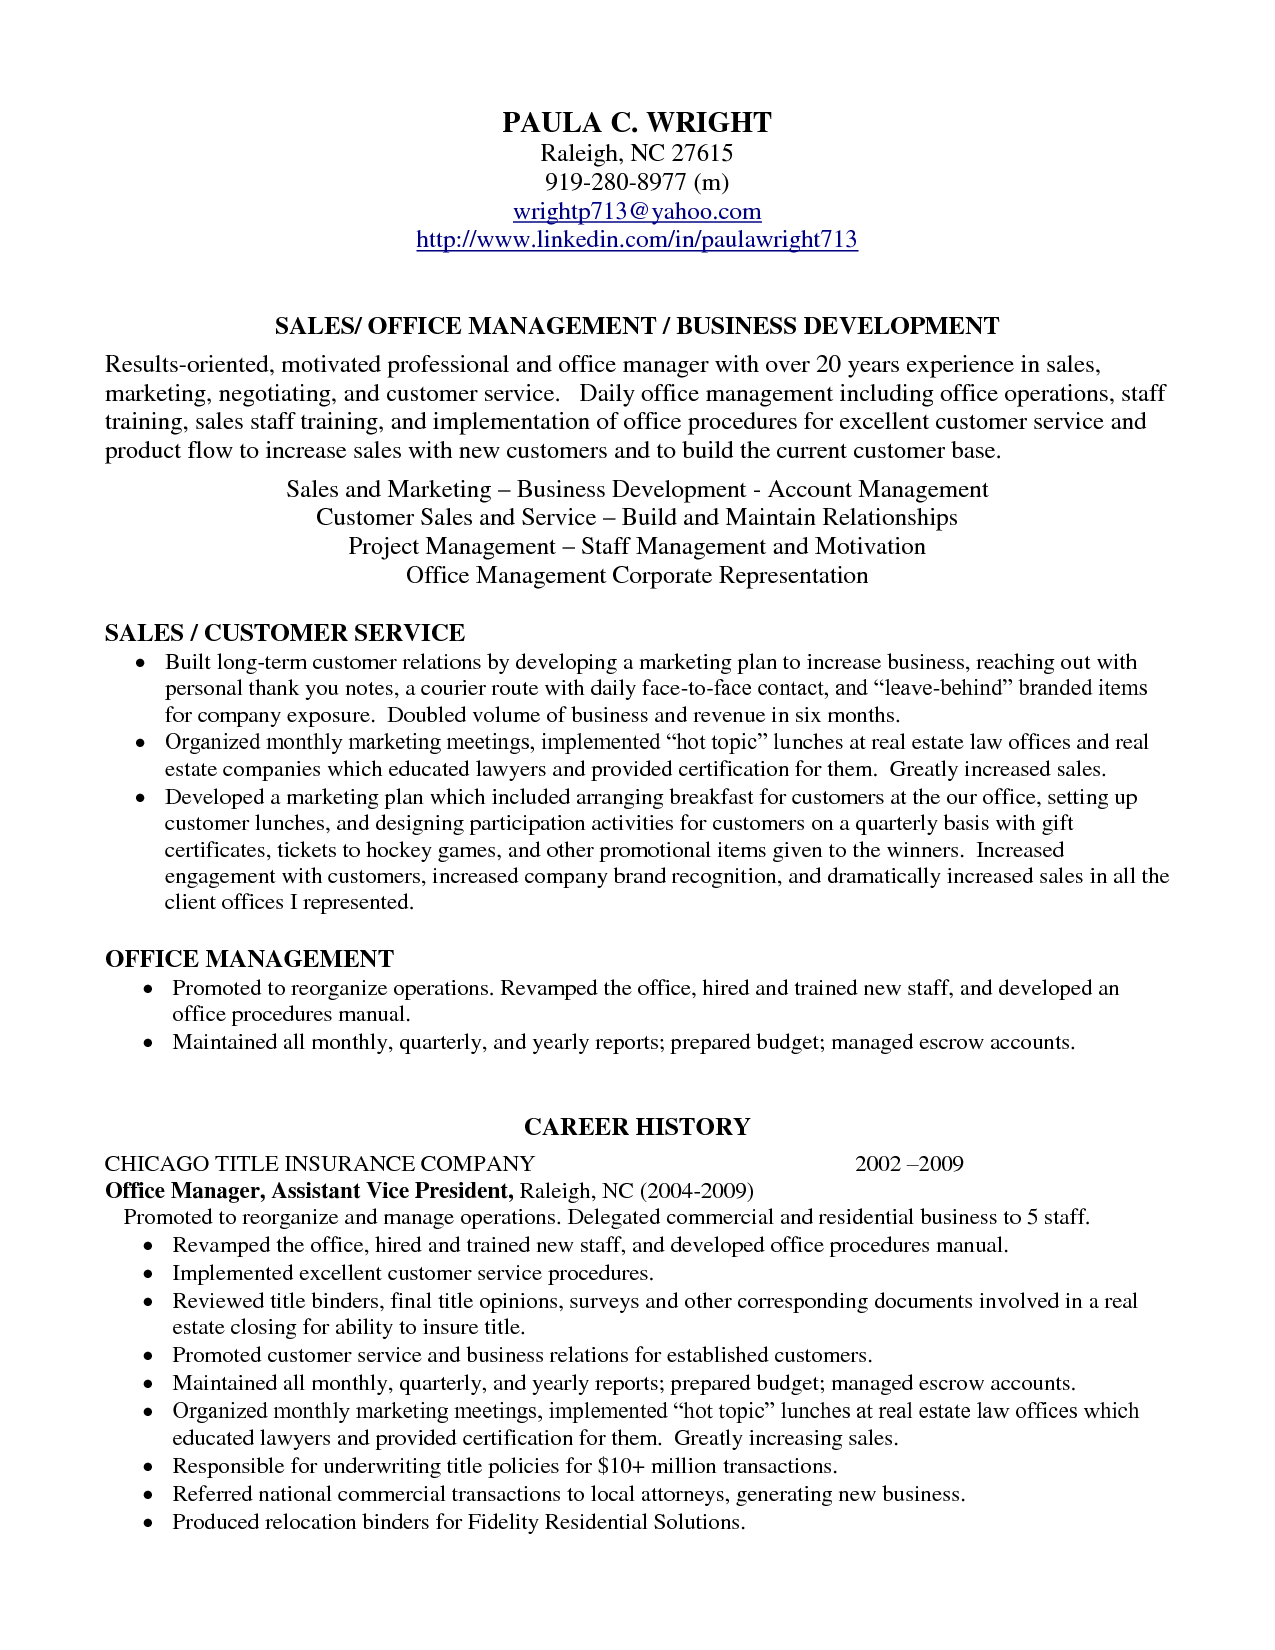 Superior Resume Writing Regarding Profile For Resume